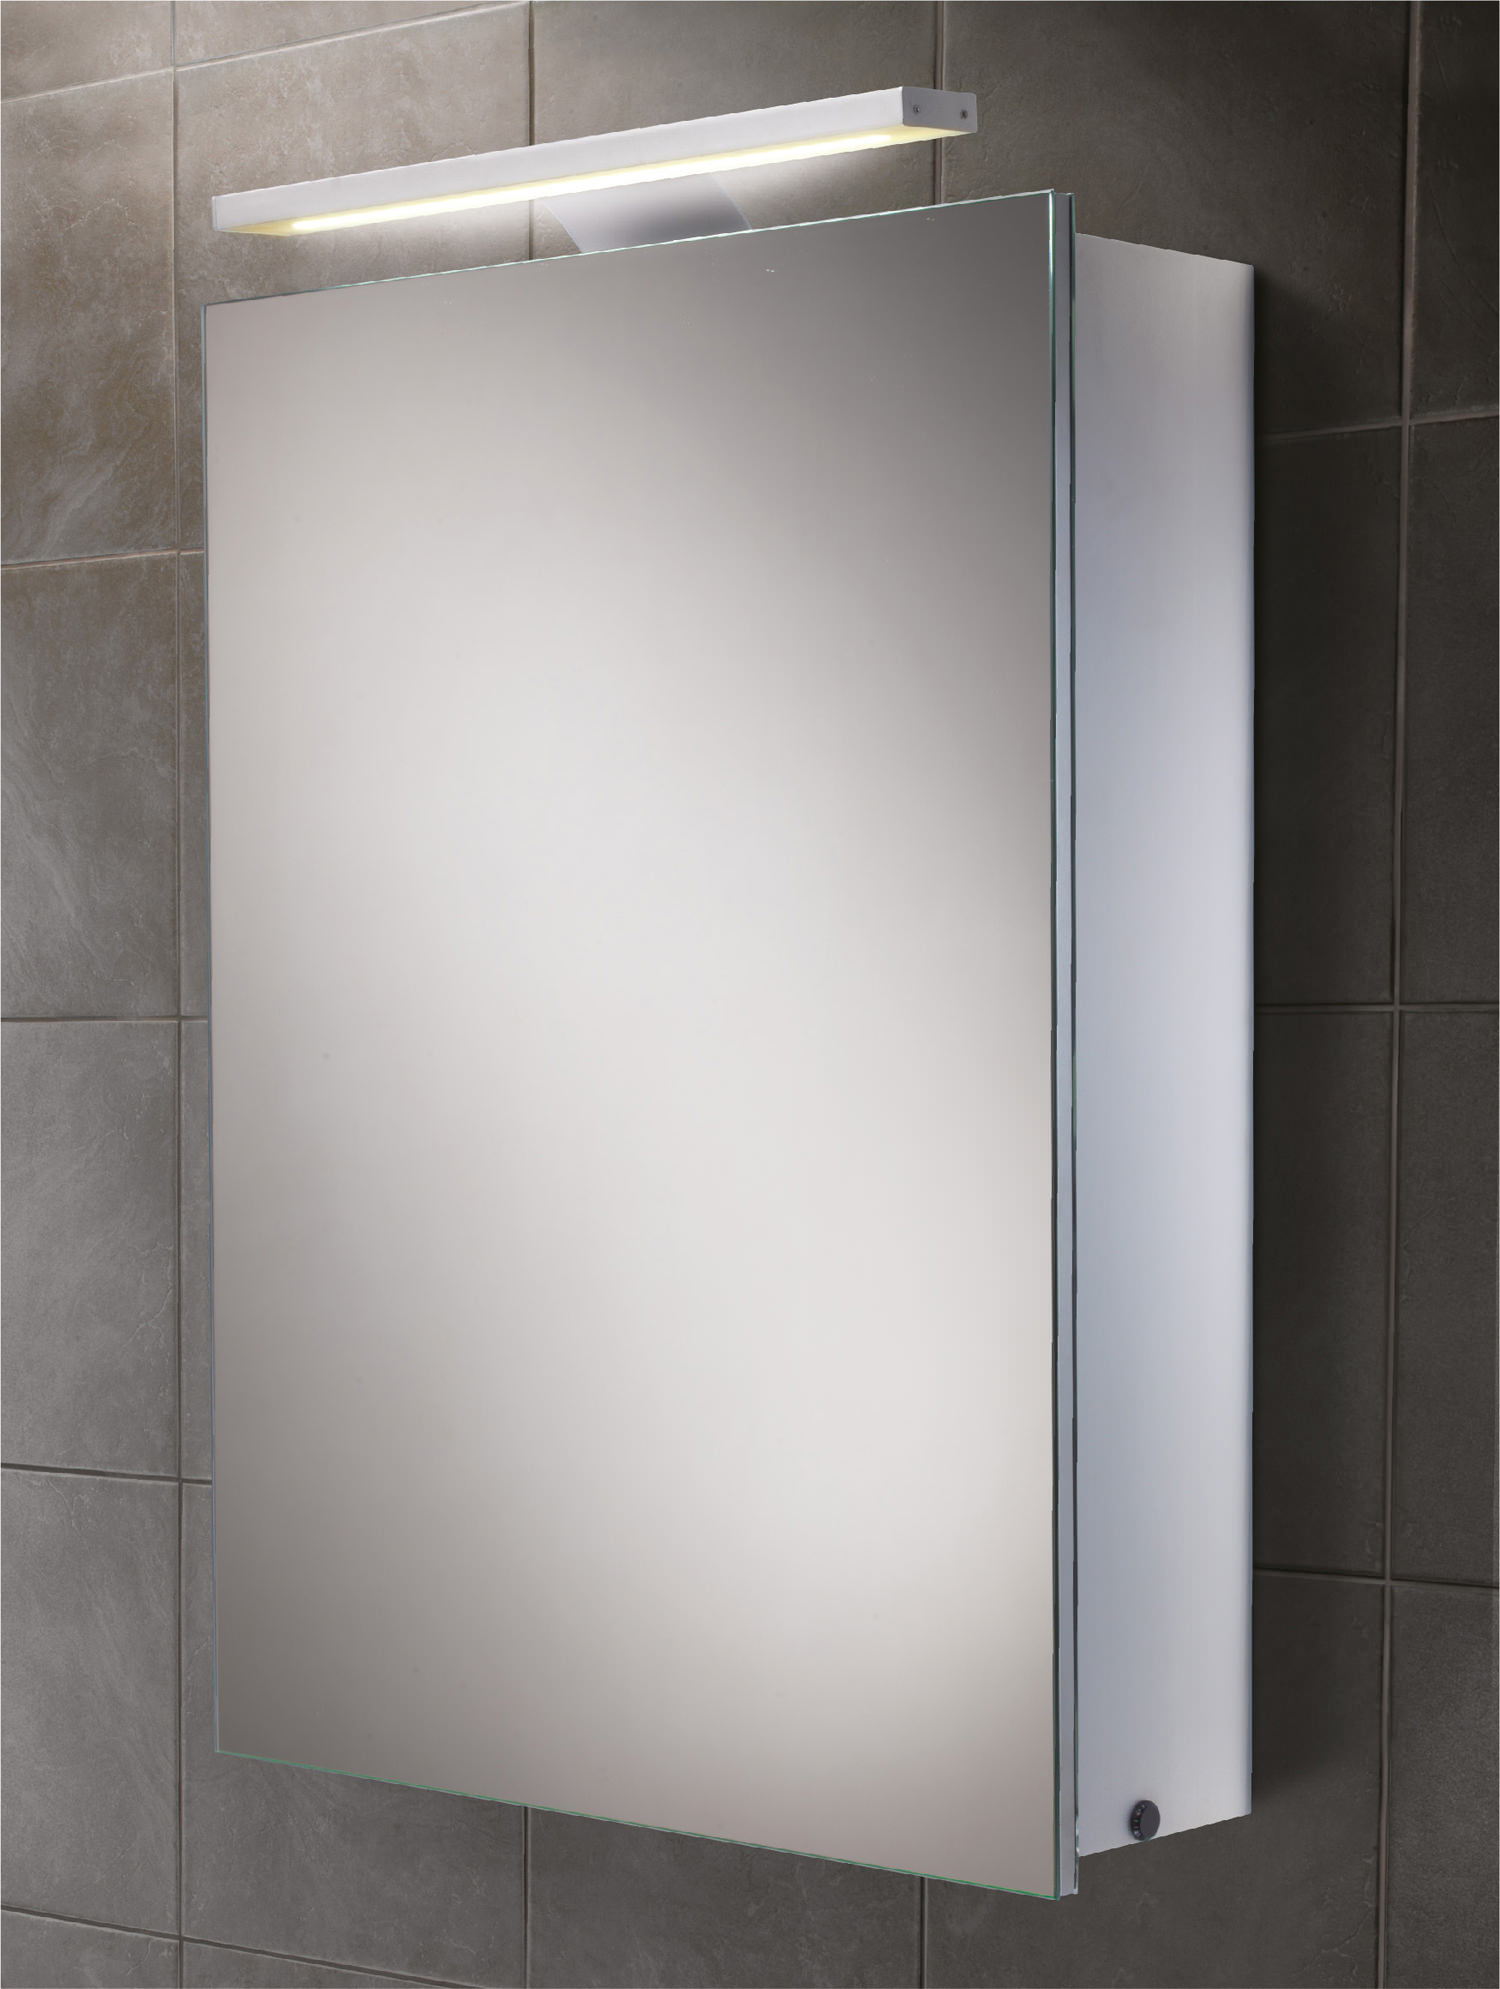 bathroom led mirror cabinet hib orbital steam free led illuminated aluminium mirrored 11522